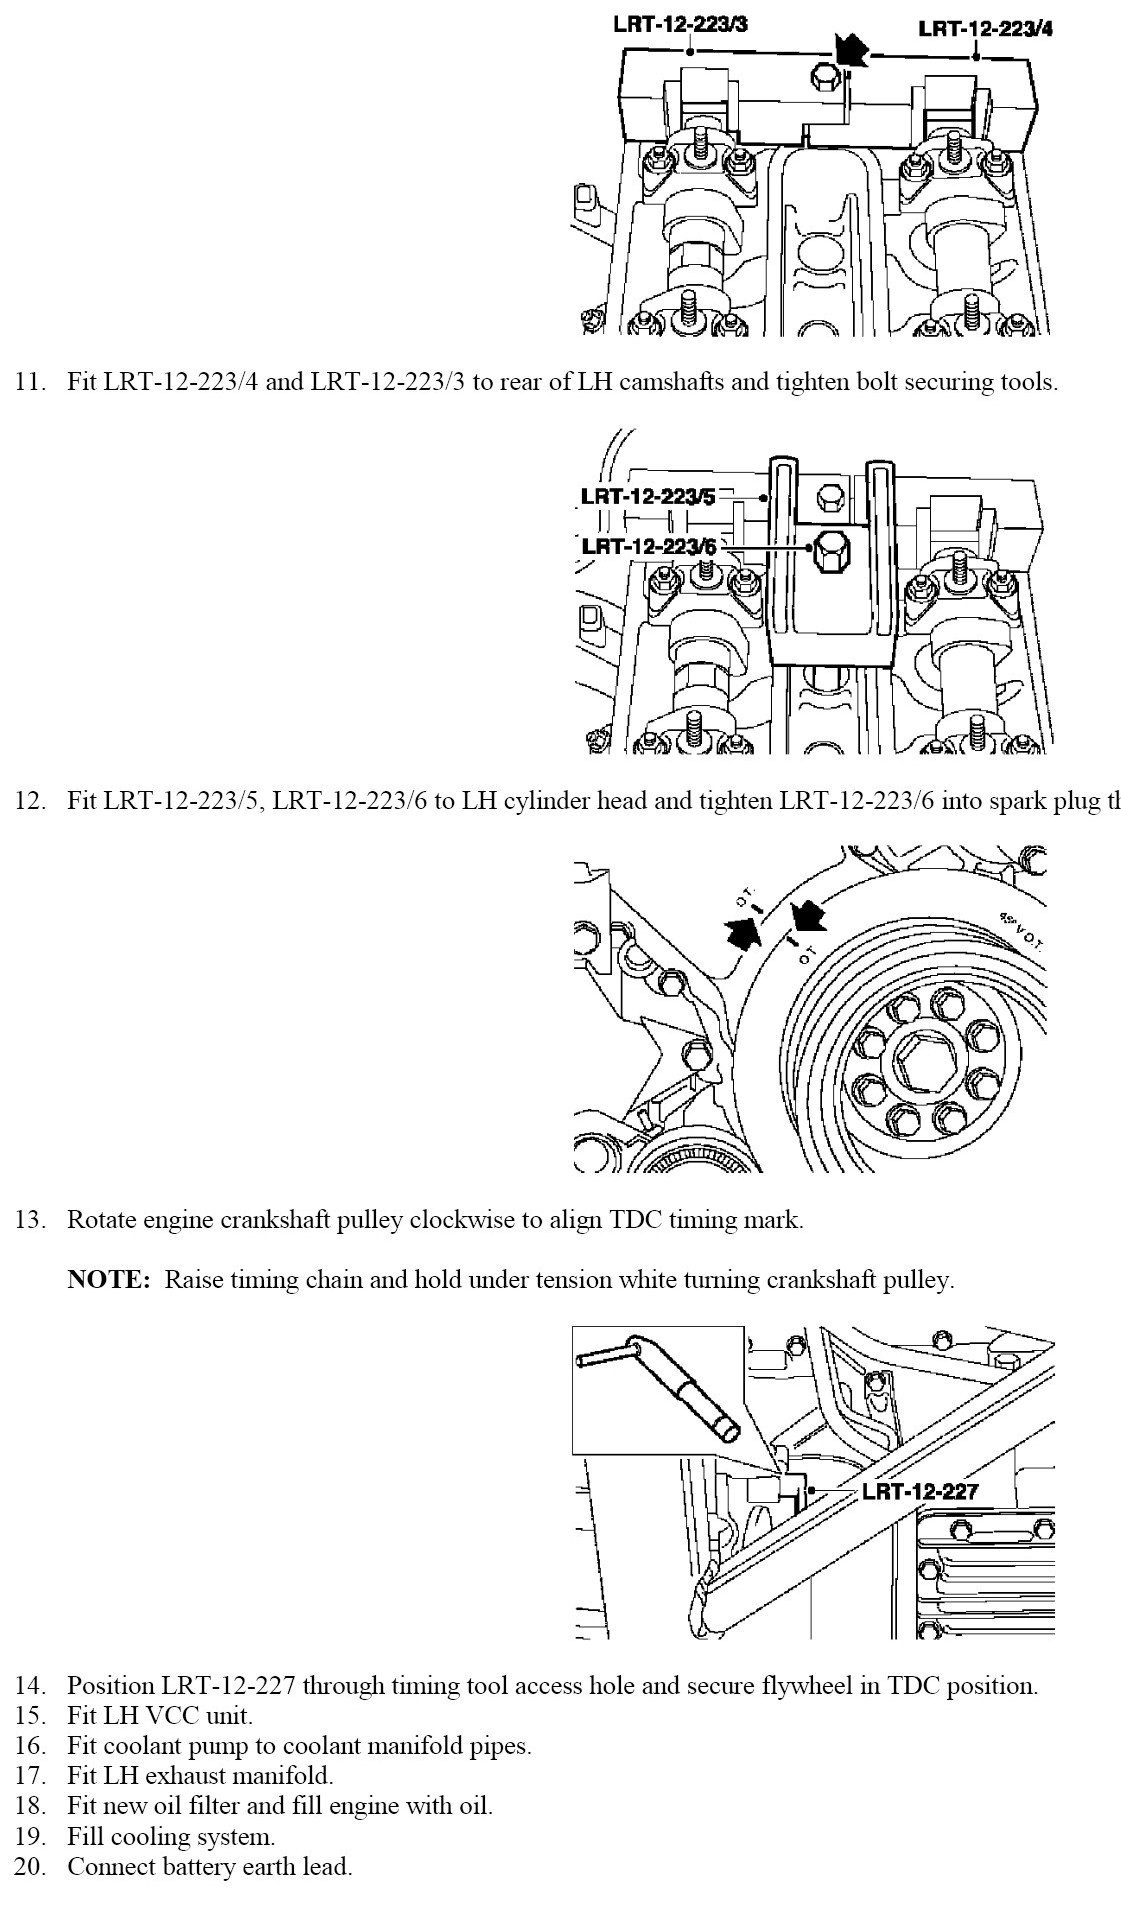 Bmw 4 V8 Engine Diagram Starting Know About Wiring X5 Images Gallery How Do I Make Sure That The Timing On My Bmw540i M62vanos Is Right Rh Justanswer